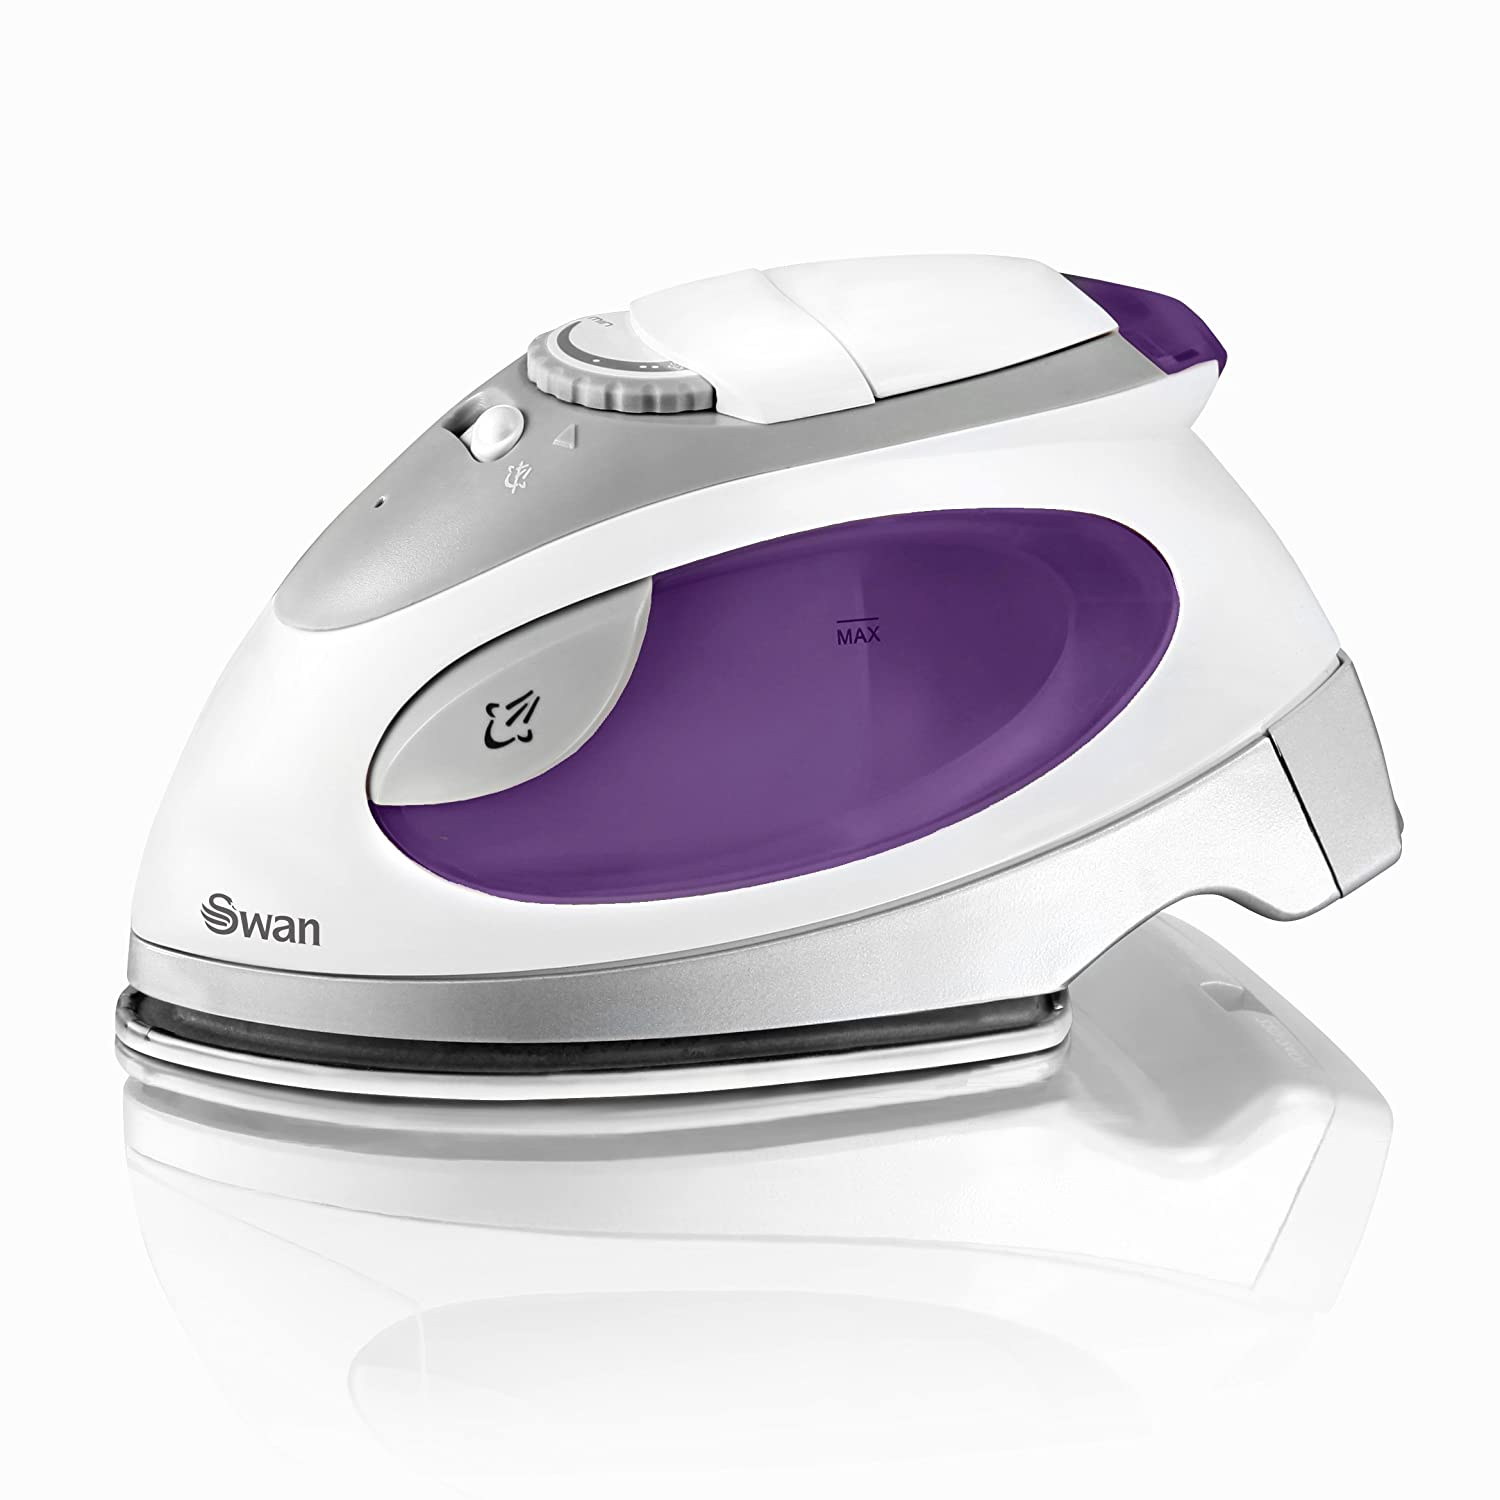 Swan SI3070N Travel Iron with Pouch, Variable Temperature Control, 900W, Purple